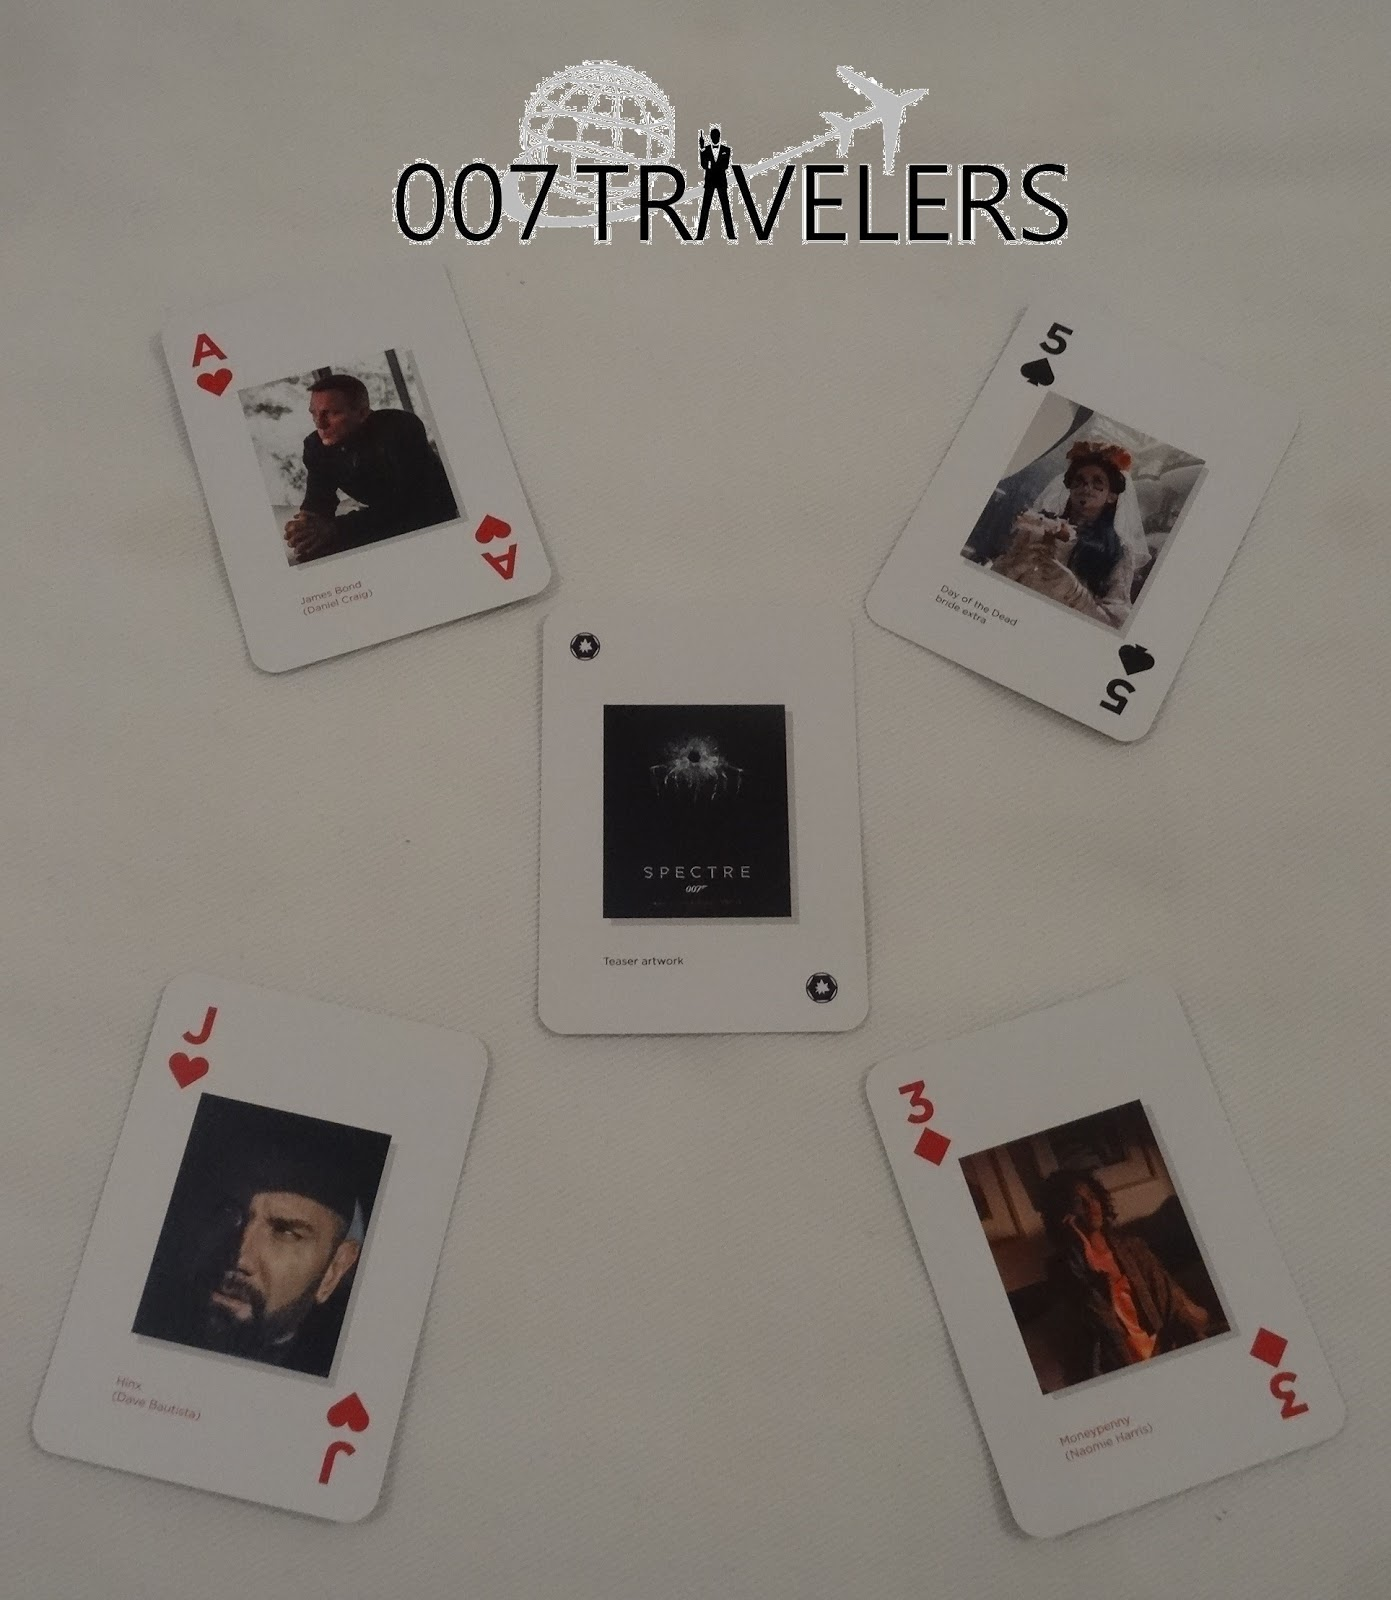 007 Travelers 007 Item 007 Playing Cards Spectre 007